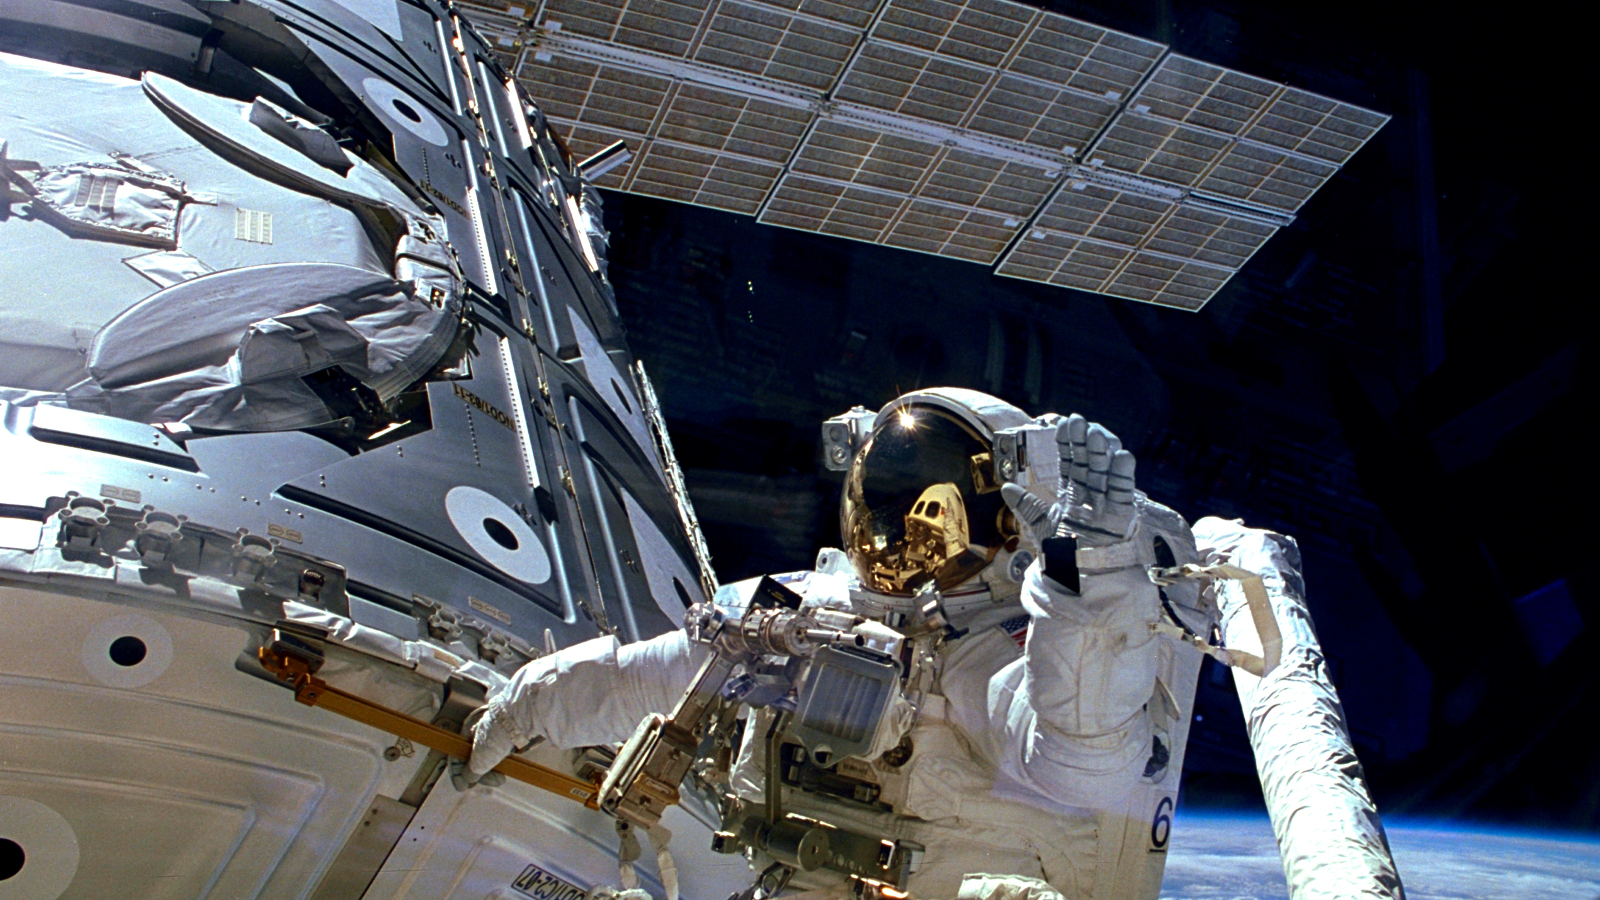 Astronaut James H. Newman waves during a spacewalk preparing for the release of the first combined elements of the International Space Station on November 20, 1998 in this image released on November 20, 2013. The Russian-built Zarya module, with its solar array panel visible here, was launched into orbit fifteen years ago on November 20, 1998. Two weeks later, on December 4, 1998, NASA's space shuttle Endeavour launched Unity, the first U.S. piece of the complex. During three spacewalks on the STS-88 mission, the two space modules built on opposite sides of the planet were joined together in space, making the space station truly international.